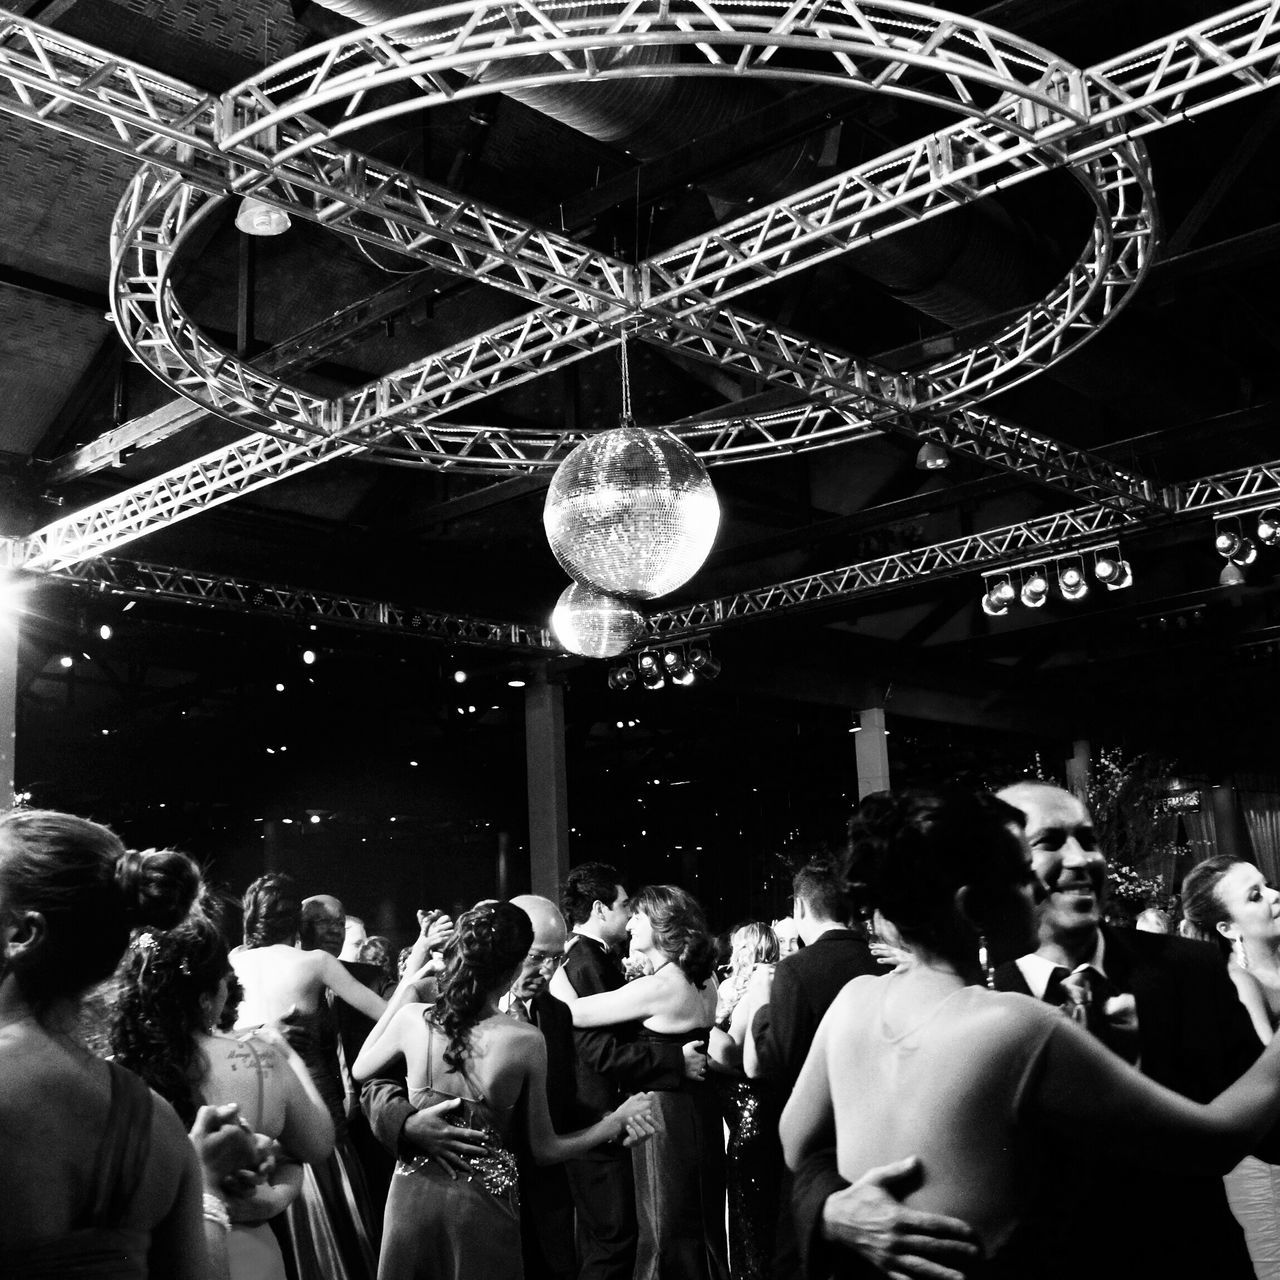 large group of people, celebration, lighting equipment, indoors, crowd, men, illuminated, leisure activity, enjoyment, arts culture and entertainment, women, nightclub, night, party - social event, people, adult